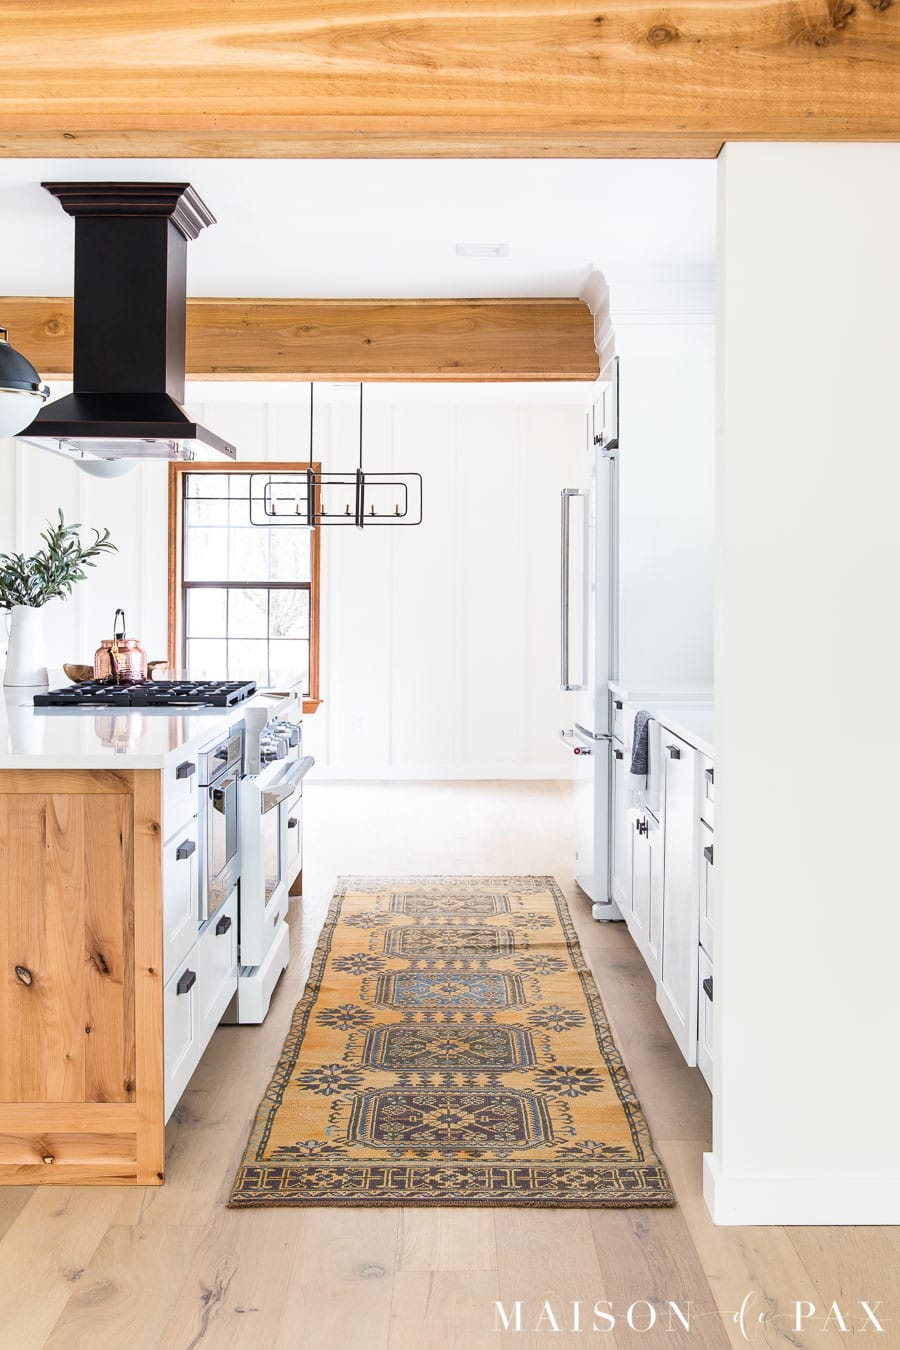 vintage runner in kitchen with big island | Maison de Pax